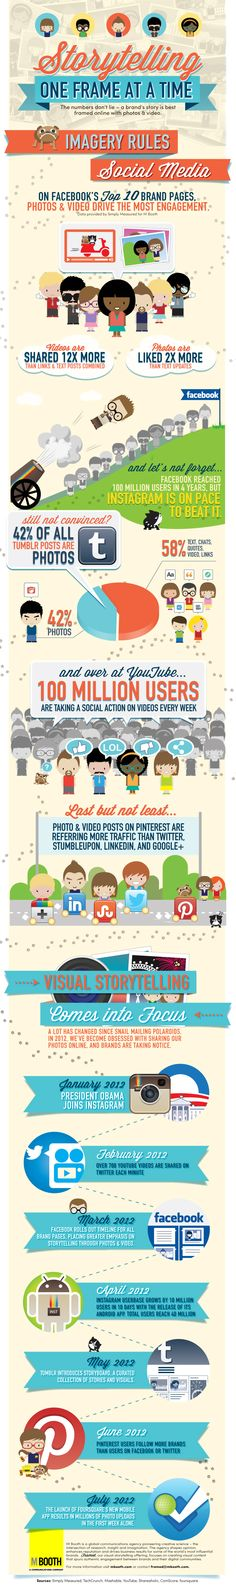 social media visual storytelling infographic (900×6049) by simply measured for m booth using techcrunch, mashable, youtube, shareaholic, comscore, and foursquare as data sources depicts the value of photos and video which drives the most social media engagement - content based on facebook's top 10 brand pages.